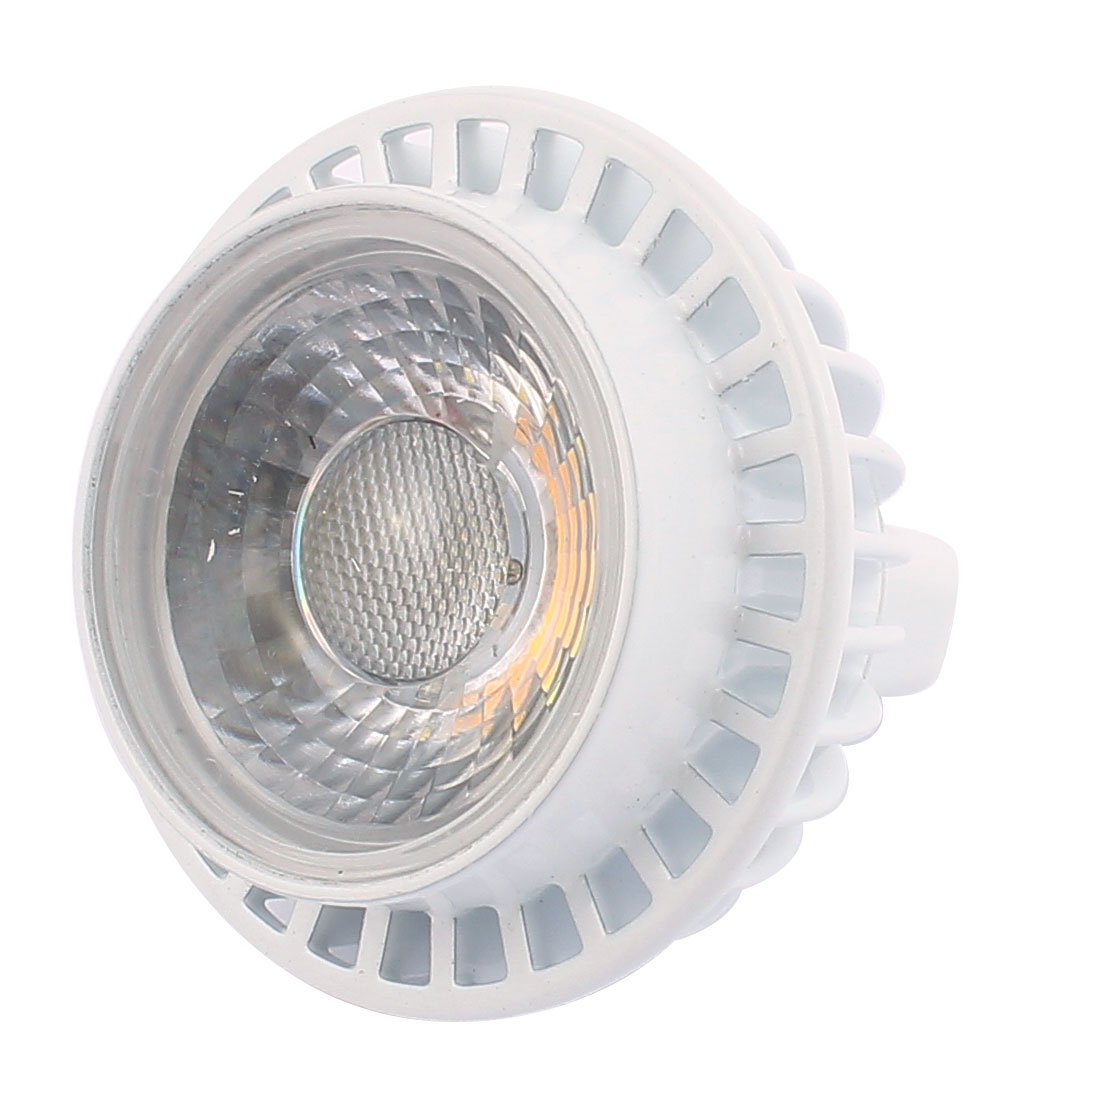 DC12V 3W Bright MR16 COB LED Spot Down Light Lamp Energy Saving Warm White